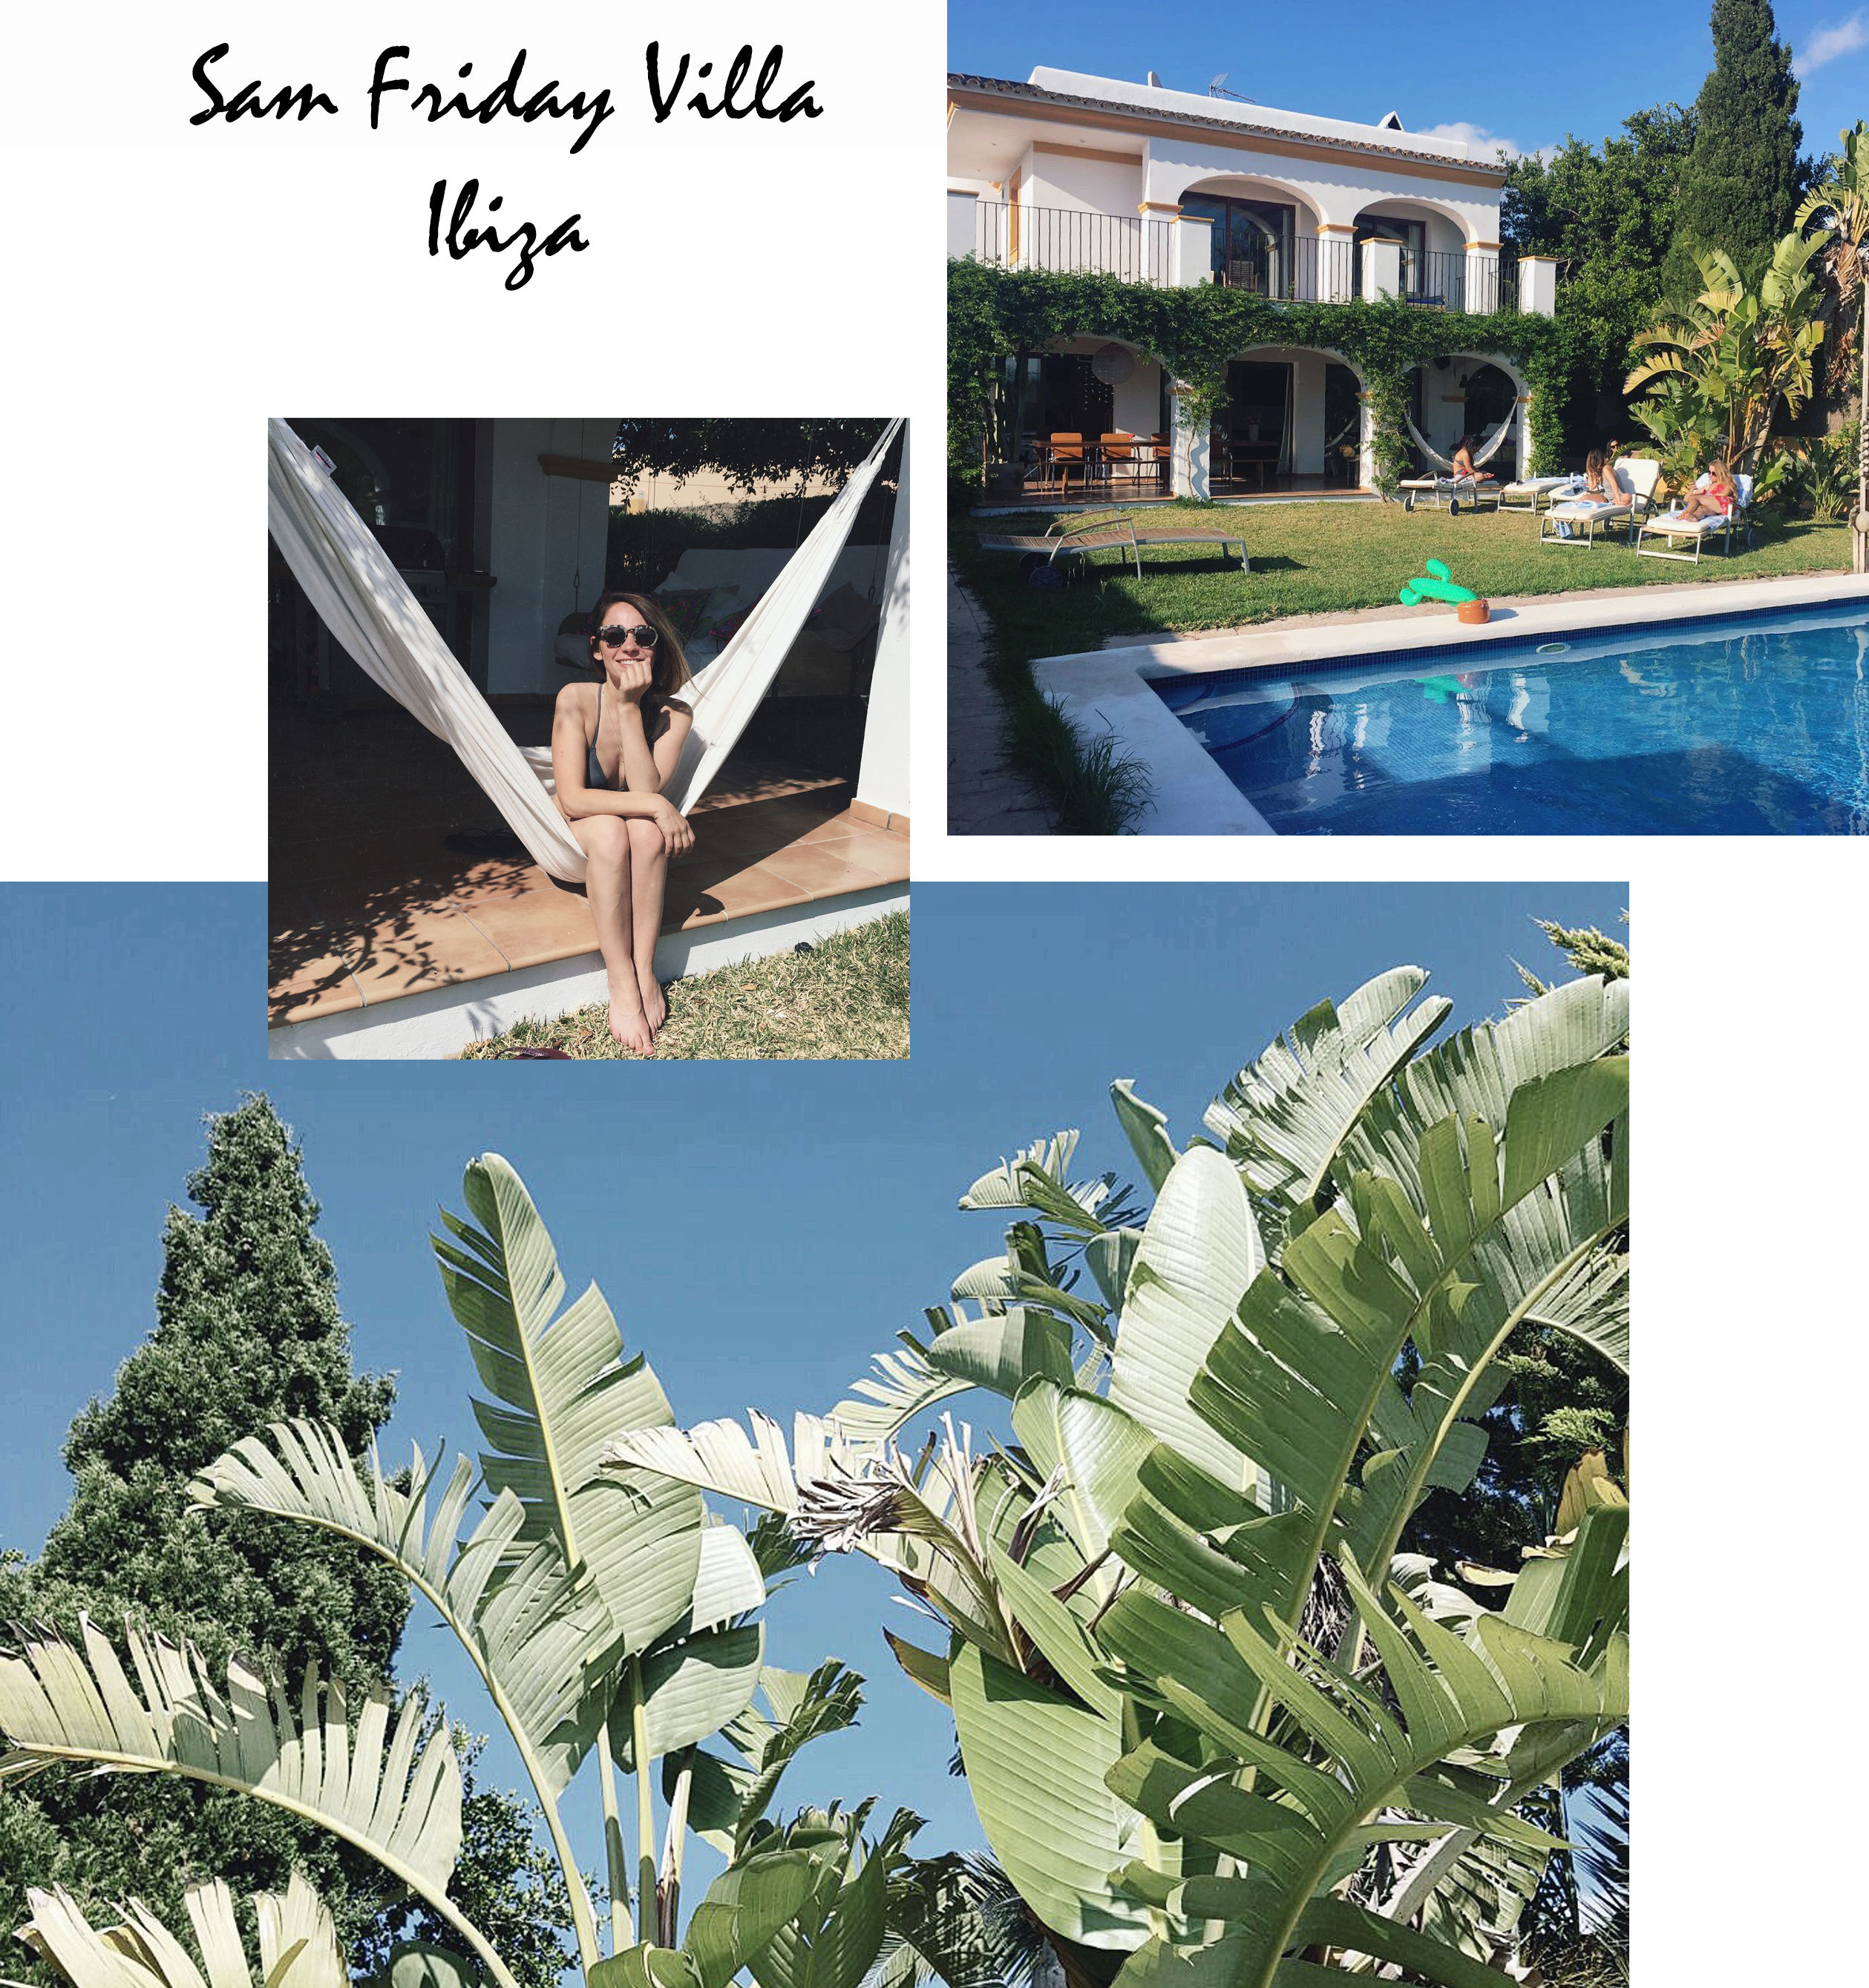 Sam Friday villa Ibiza